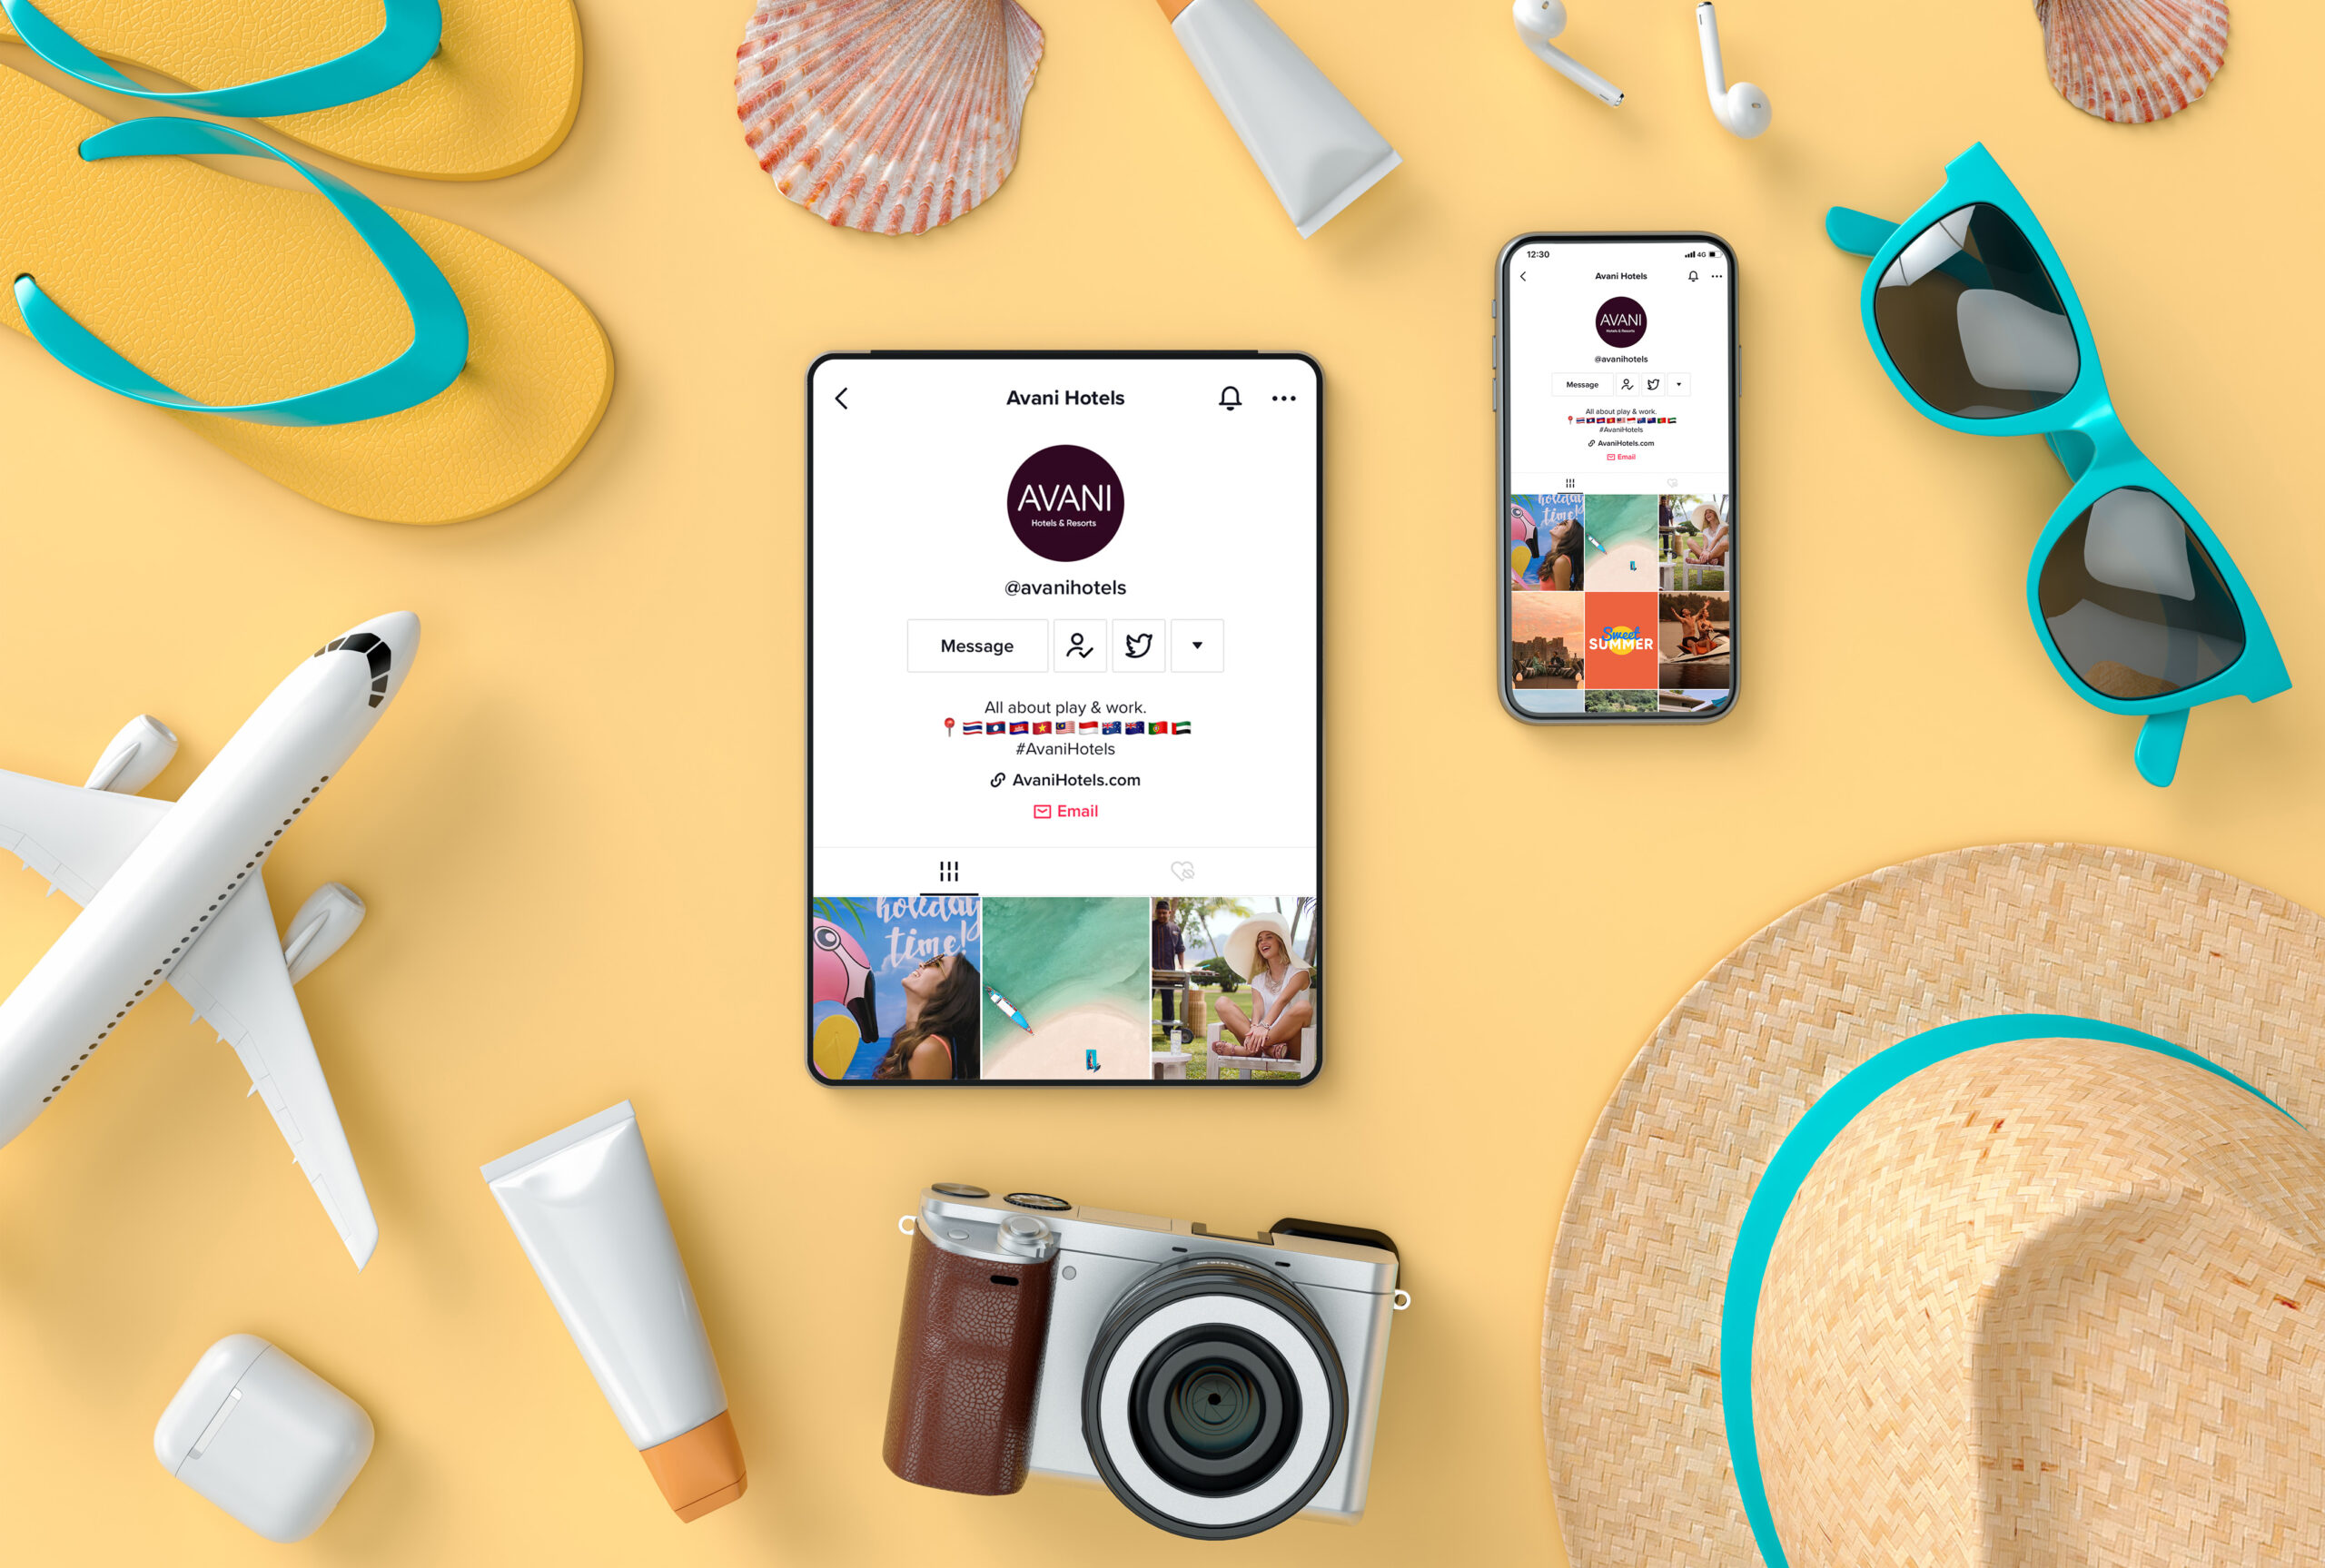 Avani Hotels launches TikTok channel